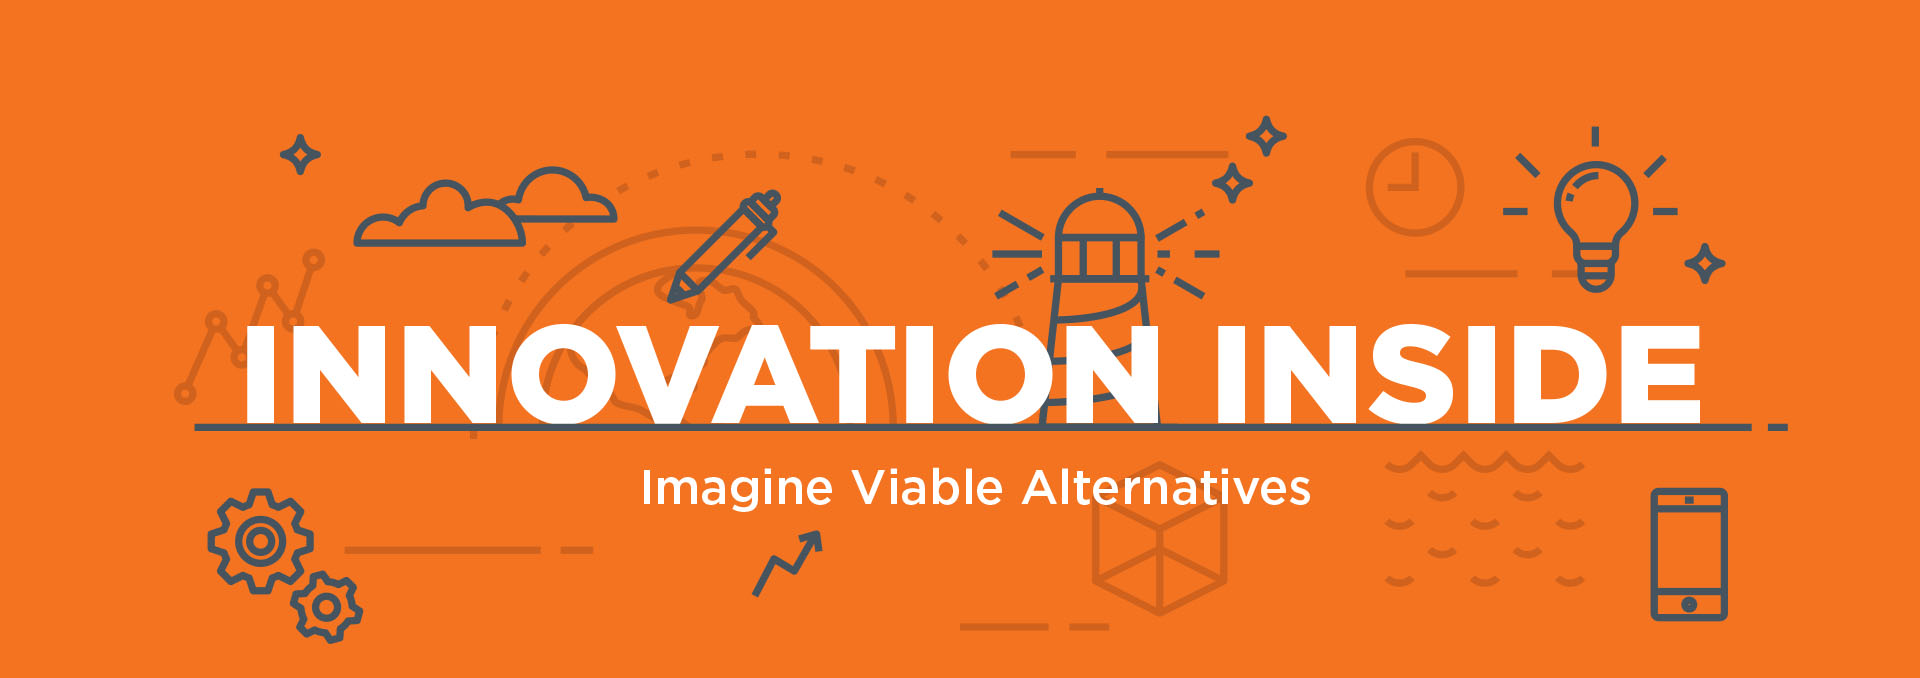 Innovation Inside - Innovation Blog